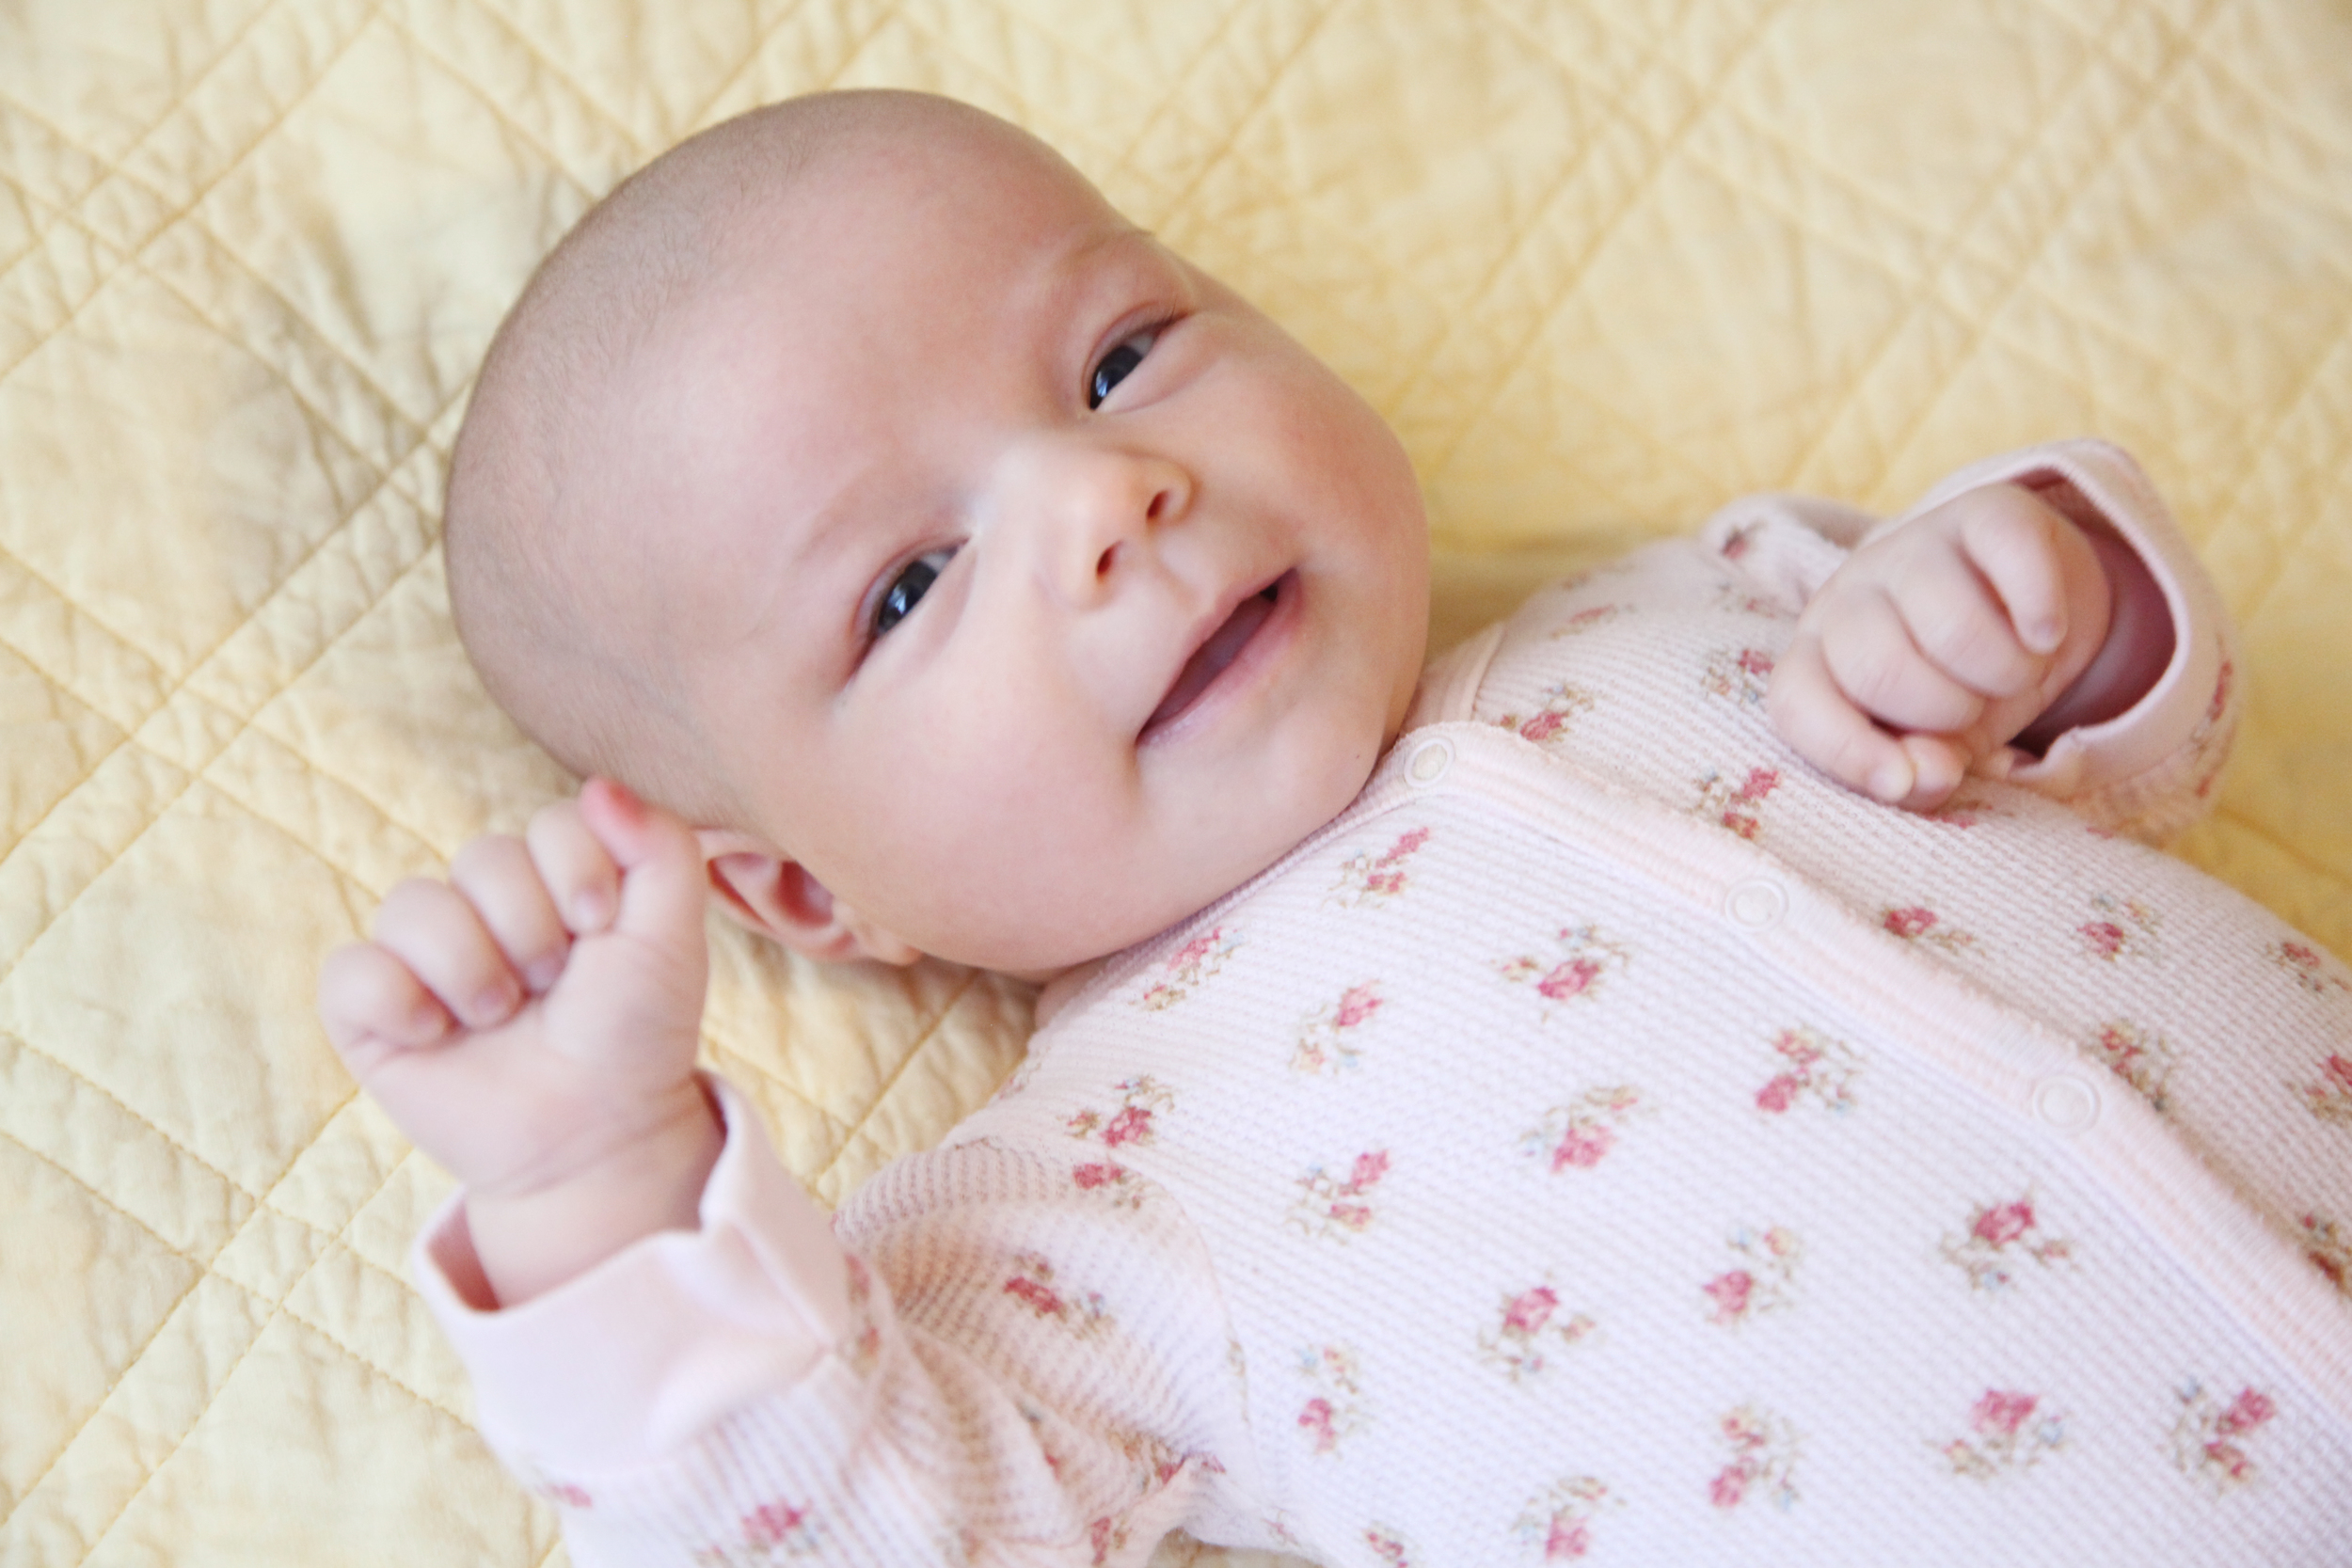 Clio Grace. Both sisters carry heirloom names from their grandmothers.